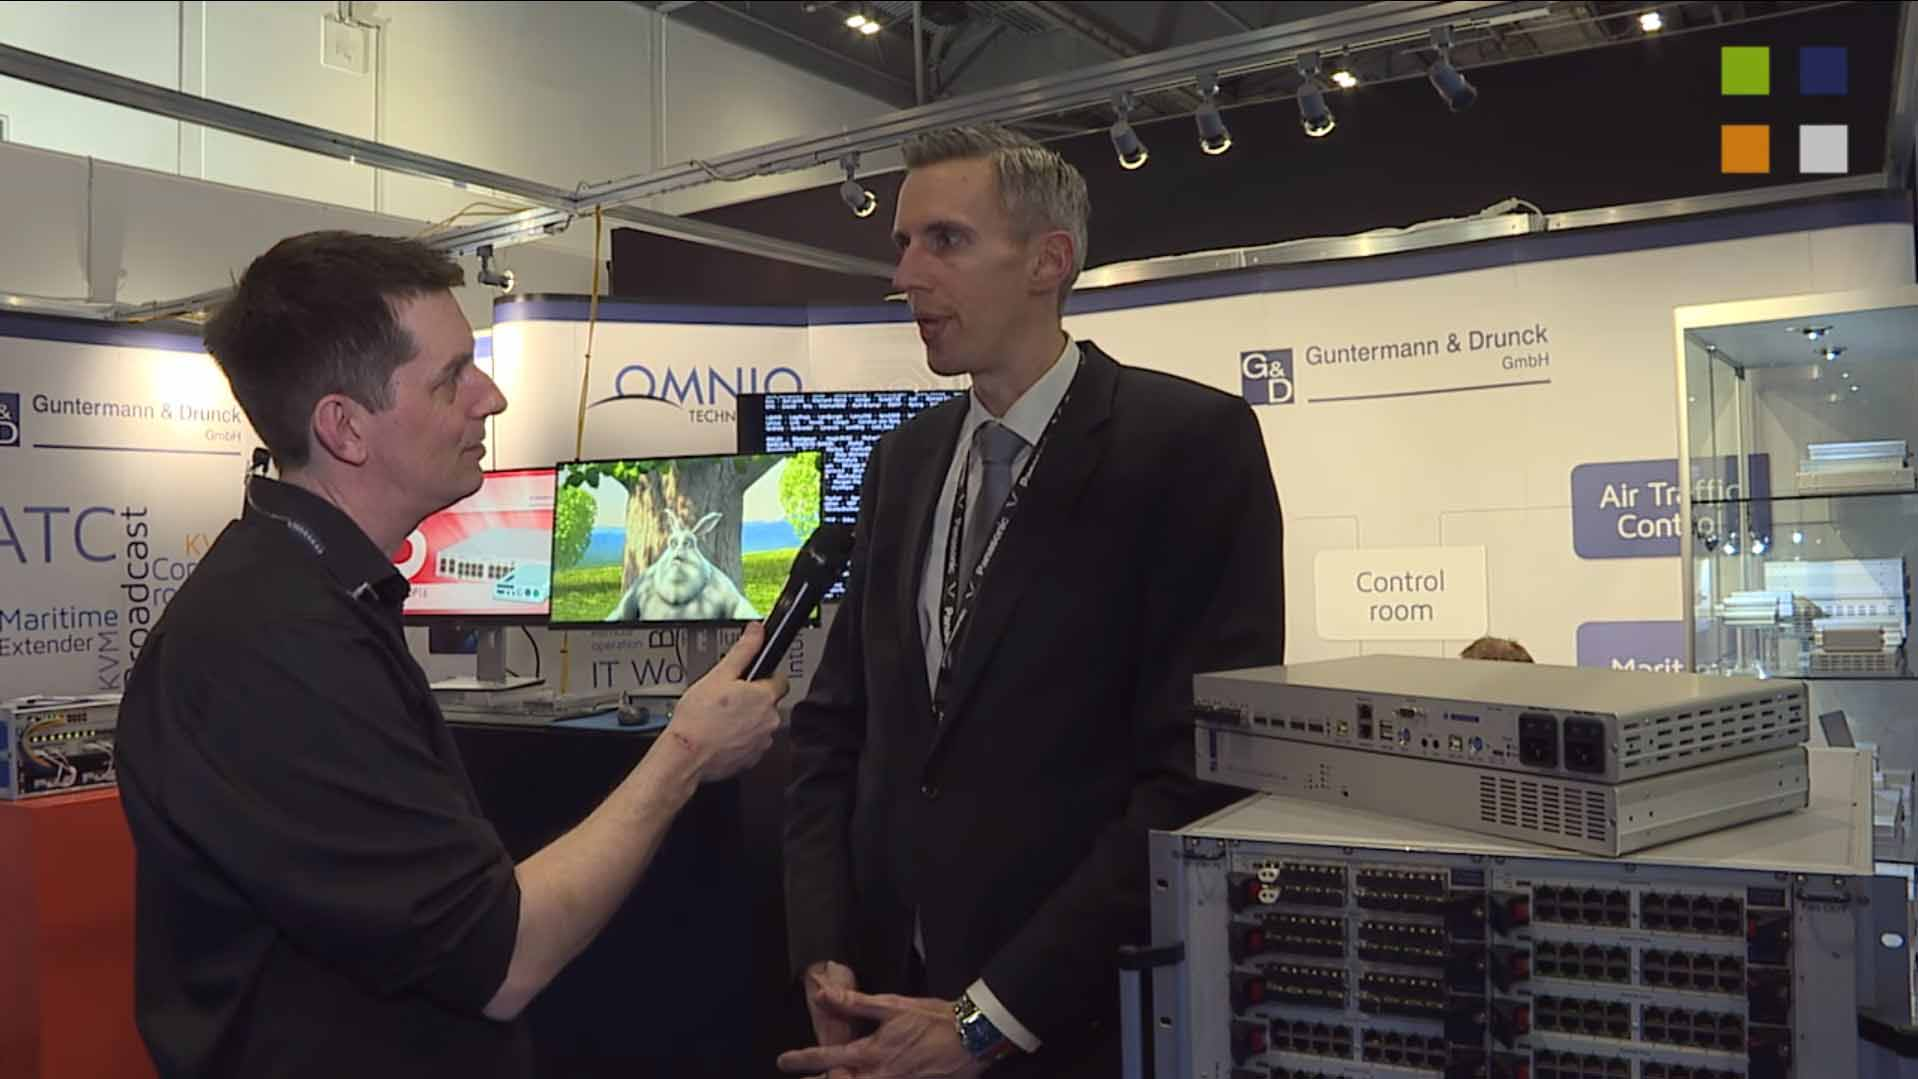 Guntermann and Drunck at BVE 2016